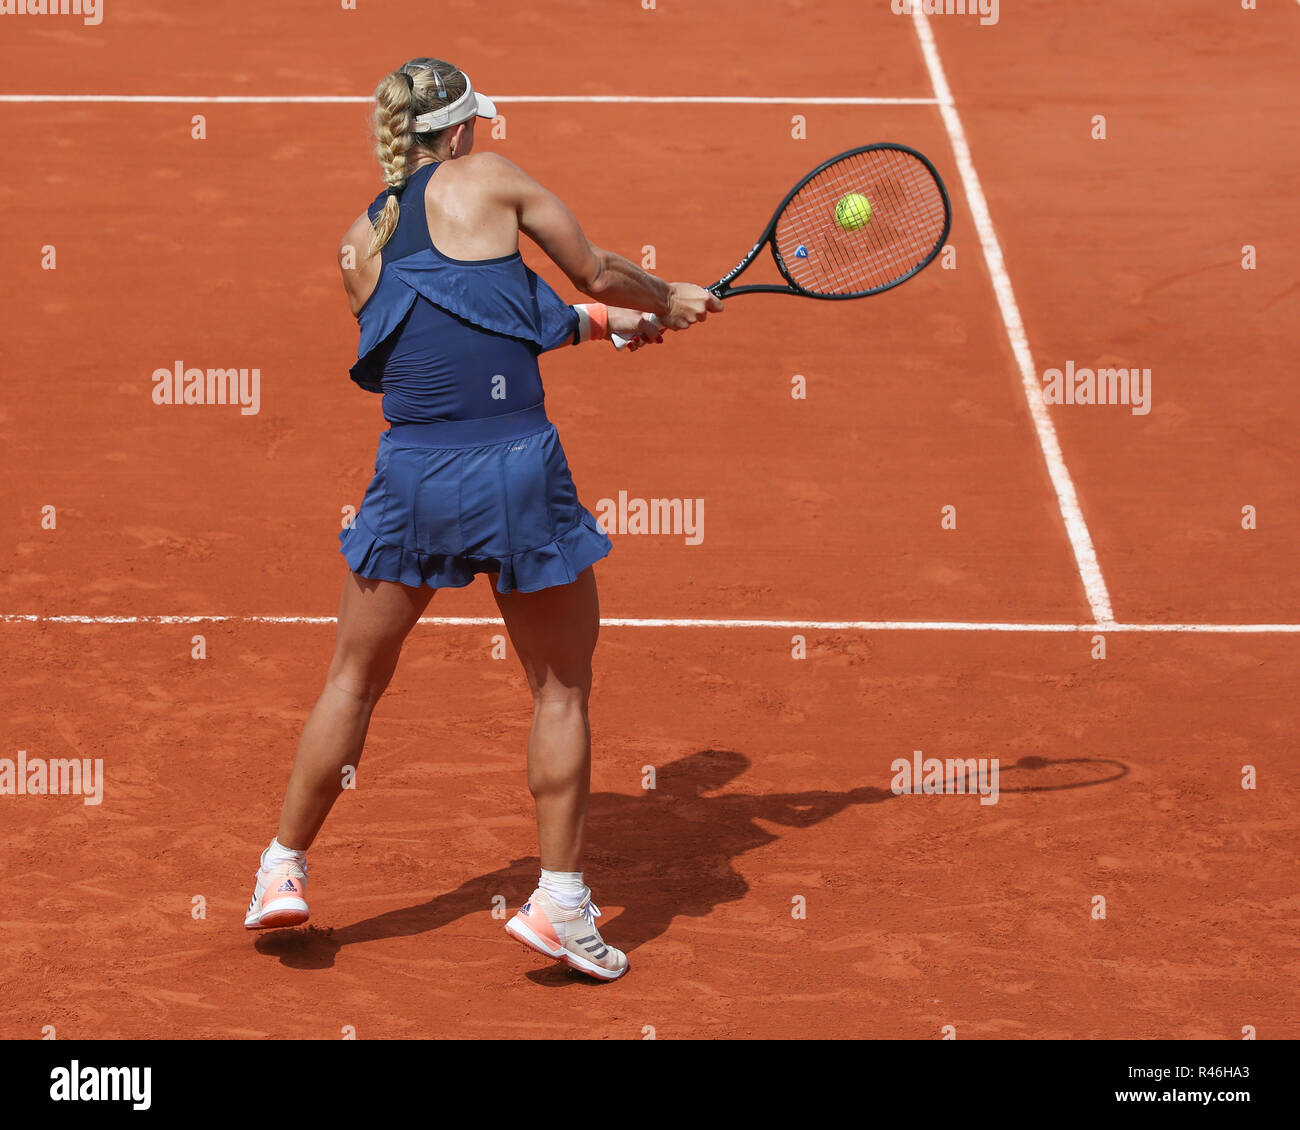 German tennis player Angelique Kerber  playing backhand shot at  the French Open 2018, Paris, France - Stock Image